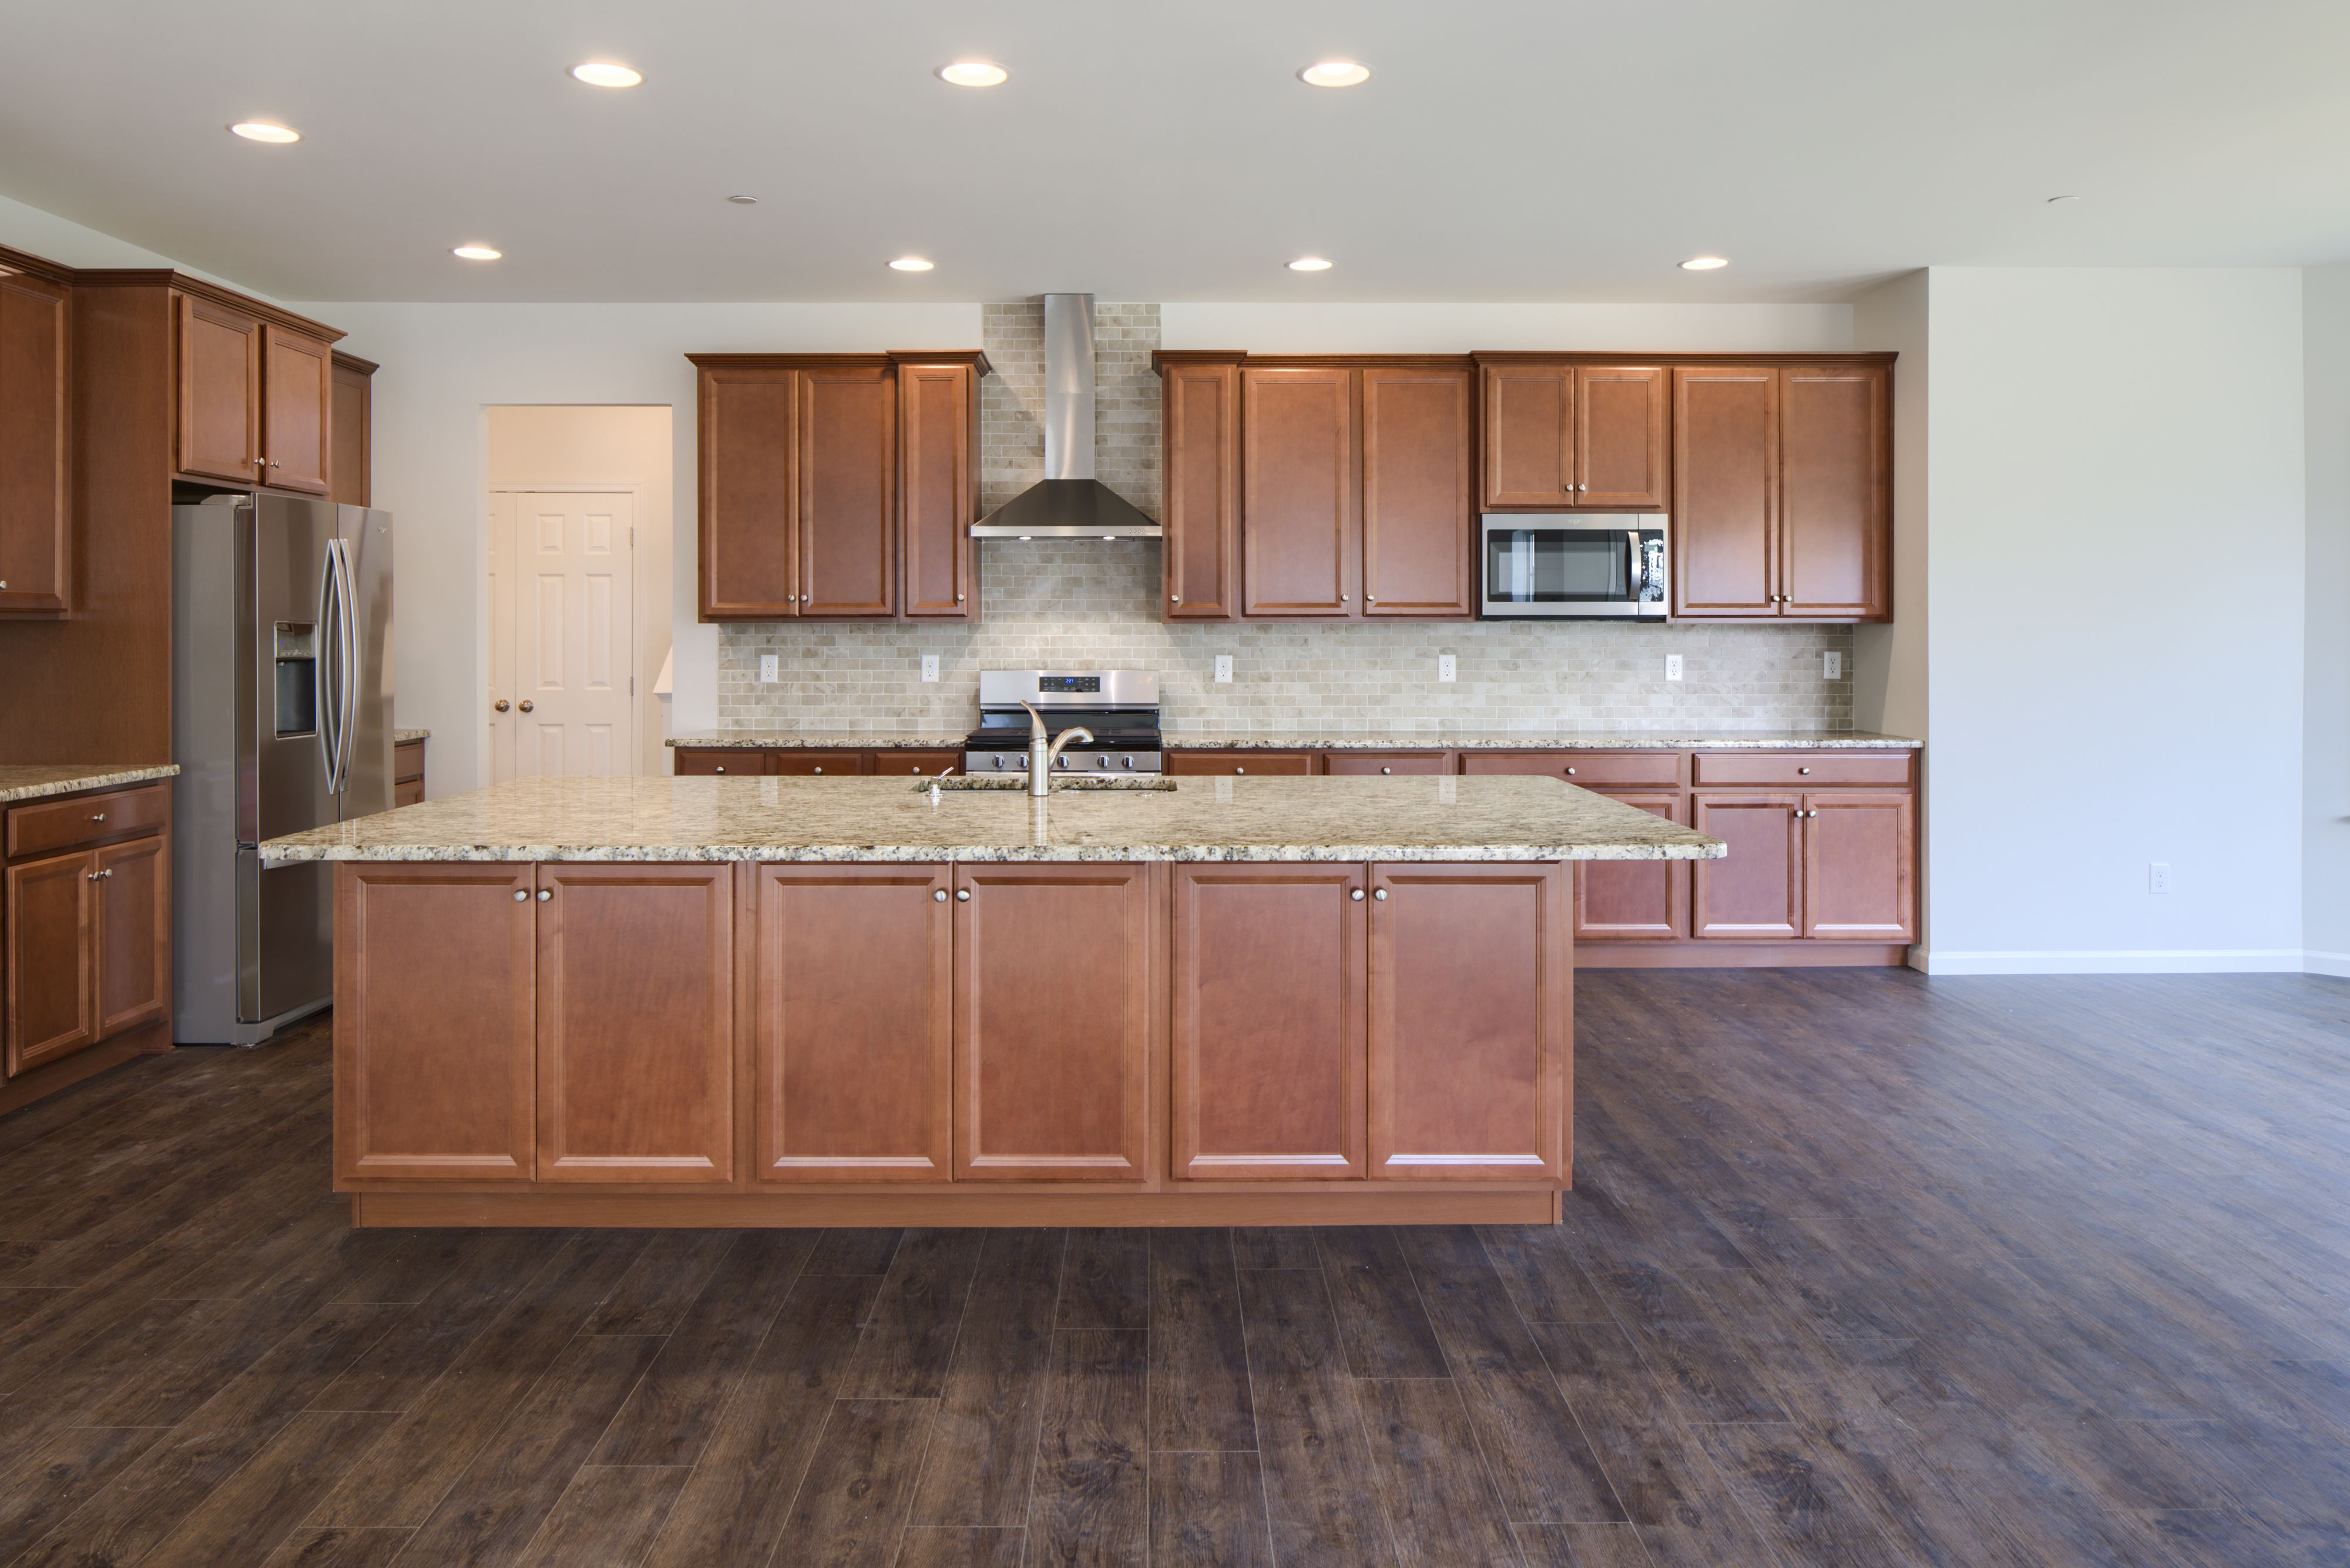 Kitchen featured in the Devonshire Vintage By Keystone Custom Homes in Baltimore, MD